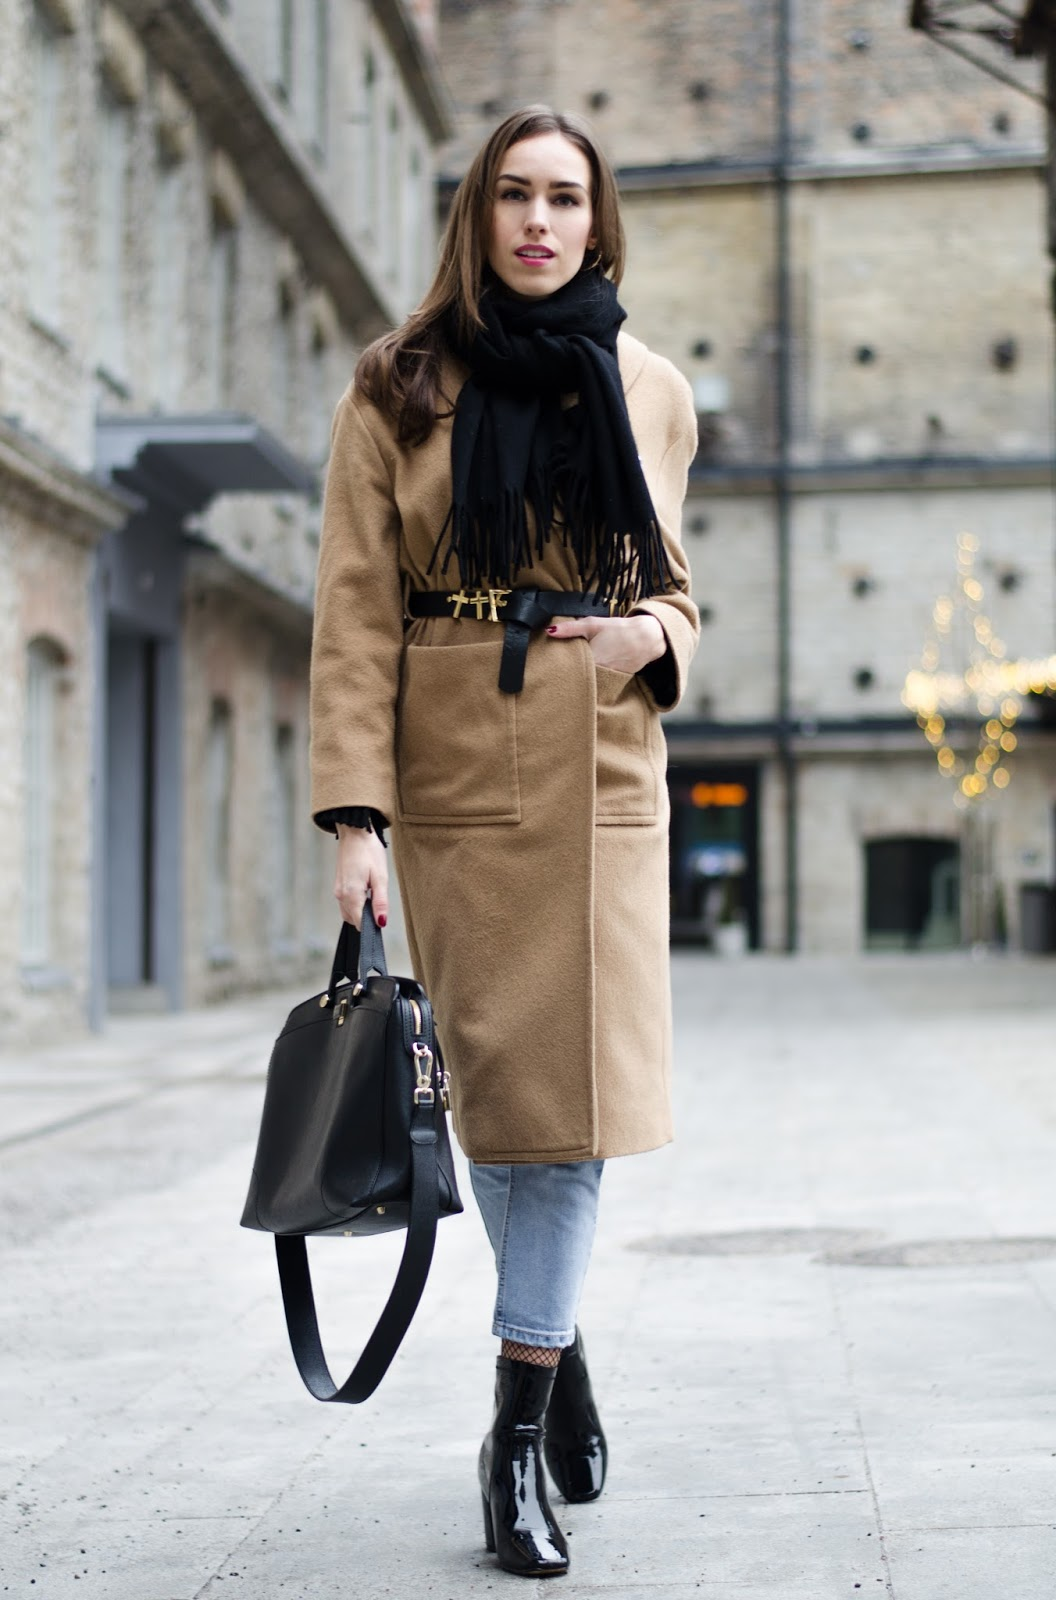 kristjaana mere belt over coat outfit